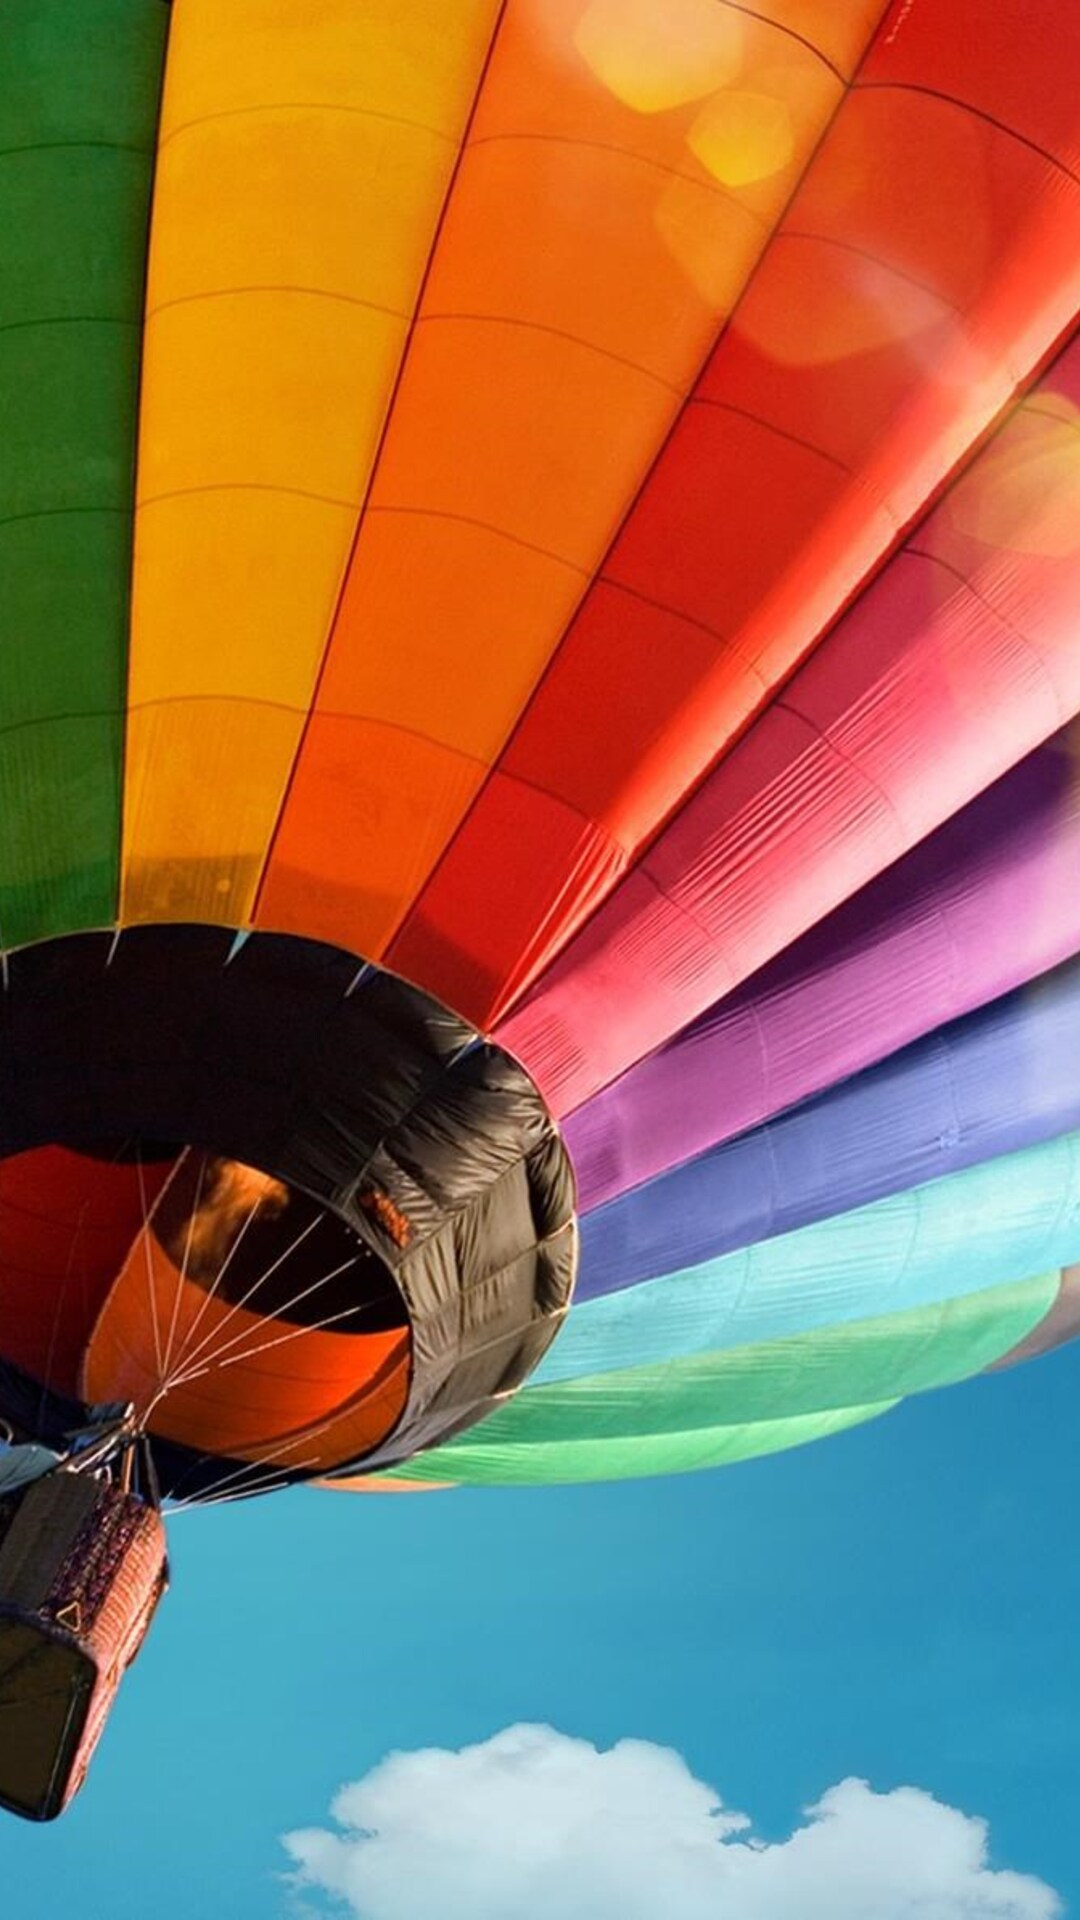 colorful-hot-air-ballon.jpg